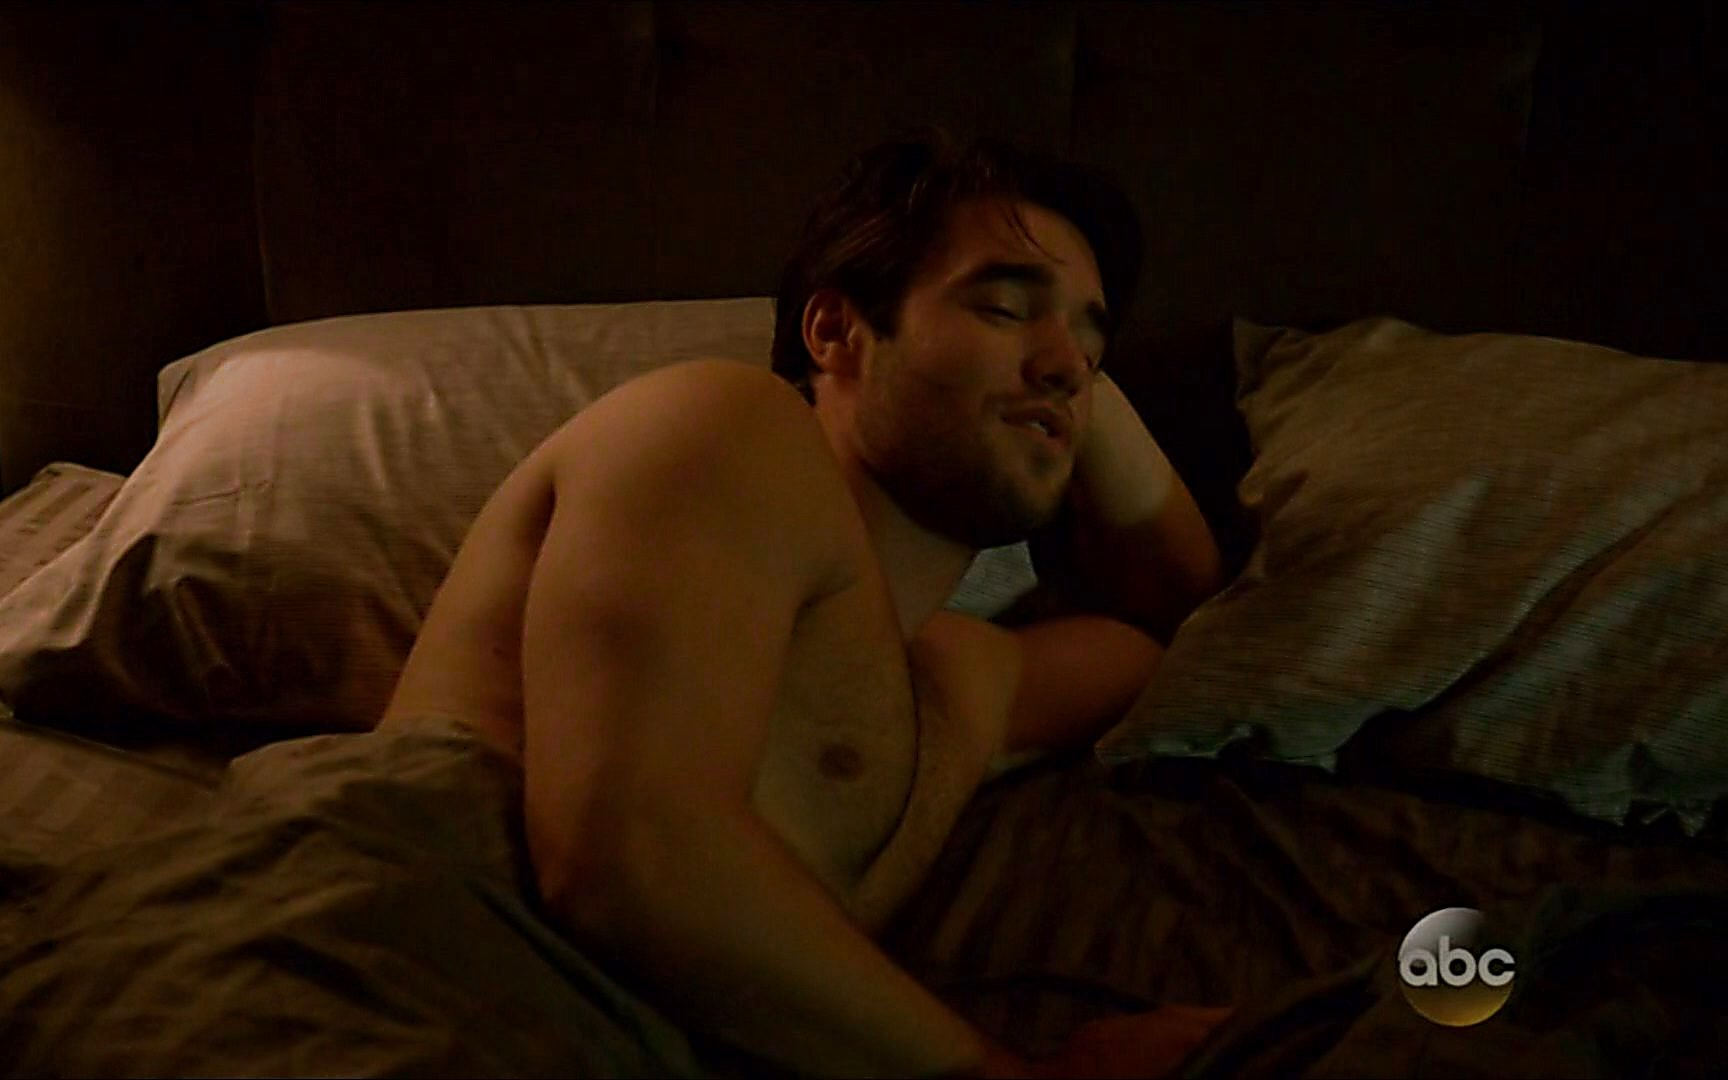 Joshua Bowman sexy shirtless scene November 4, 2014, 1am